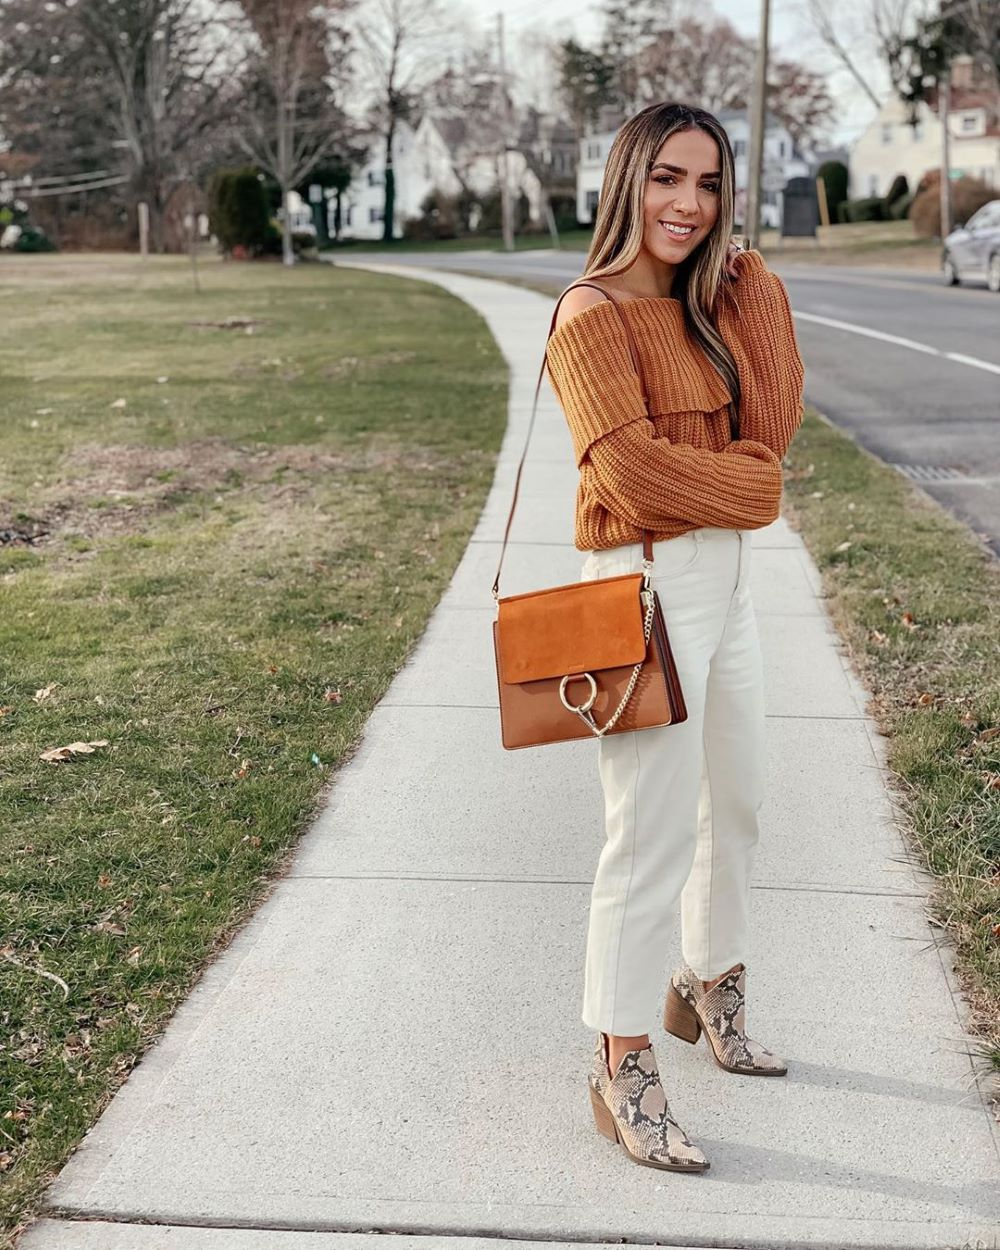 Kick Flare Jeans with Chunky Knit Sweater